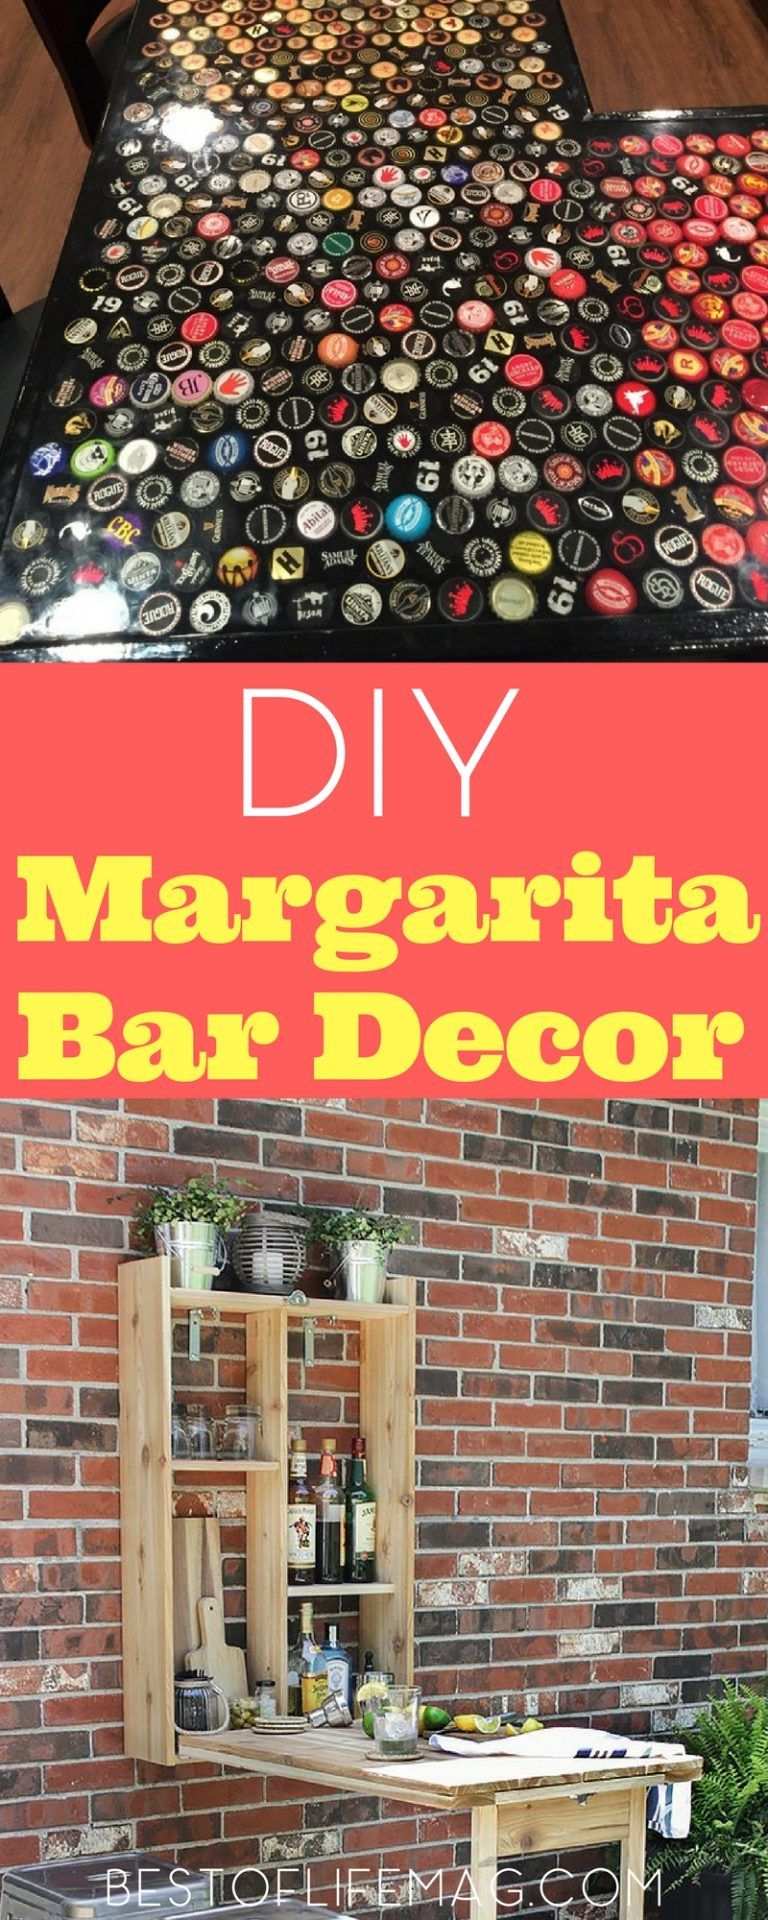 Margarita Bar Decorations and Ideas | Margaritas, Bar and Easy